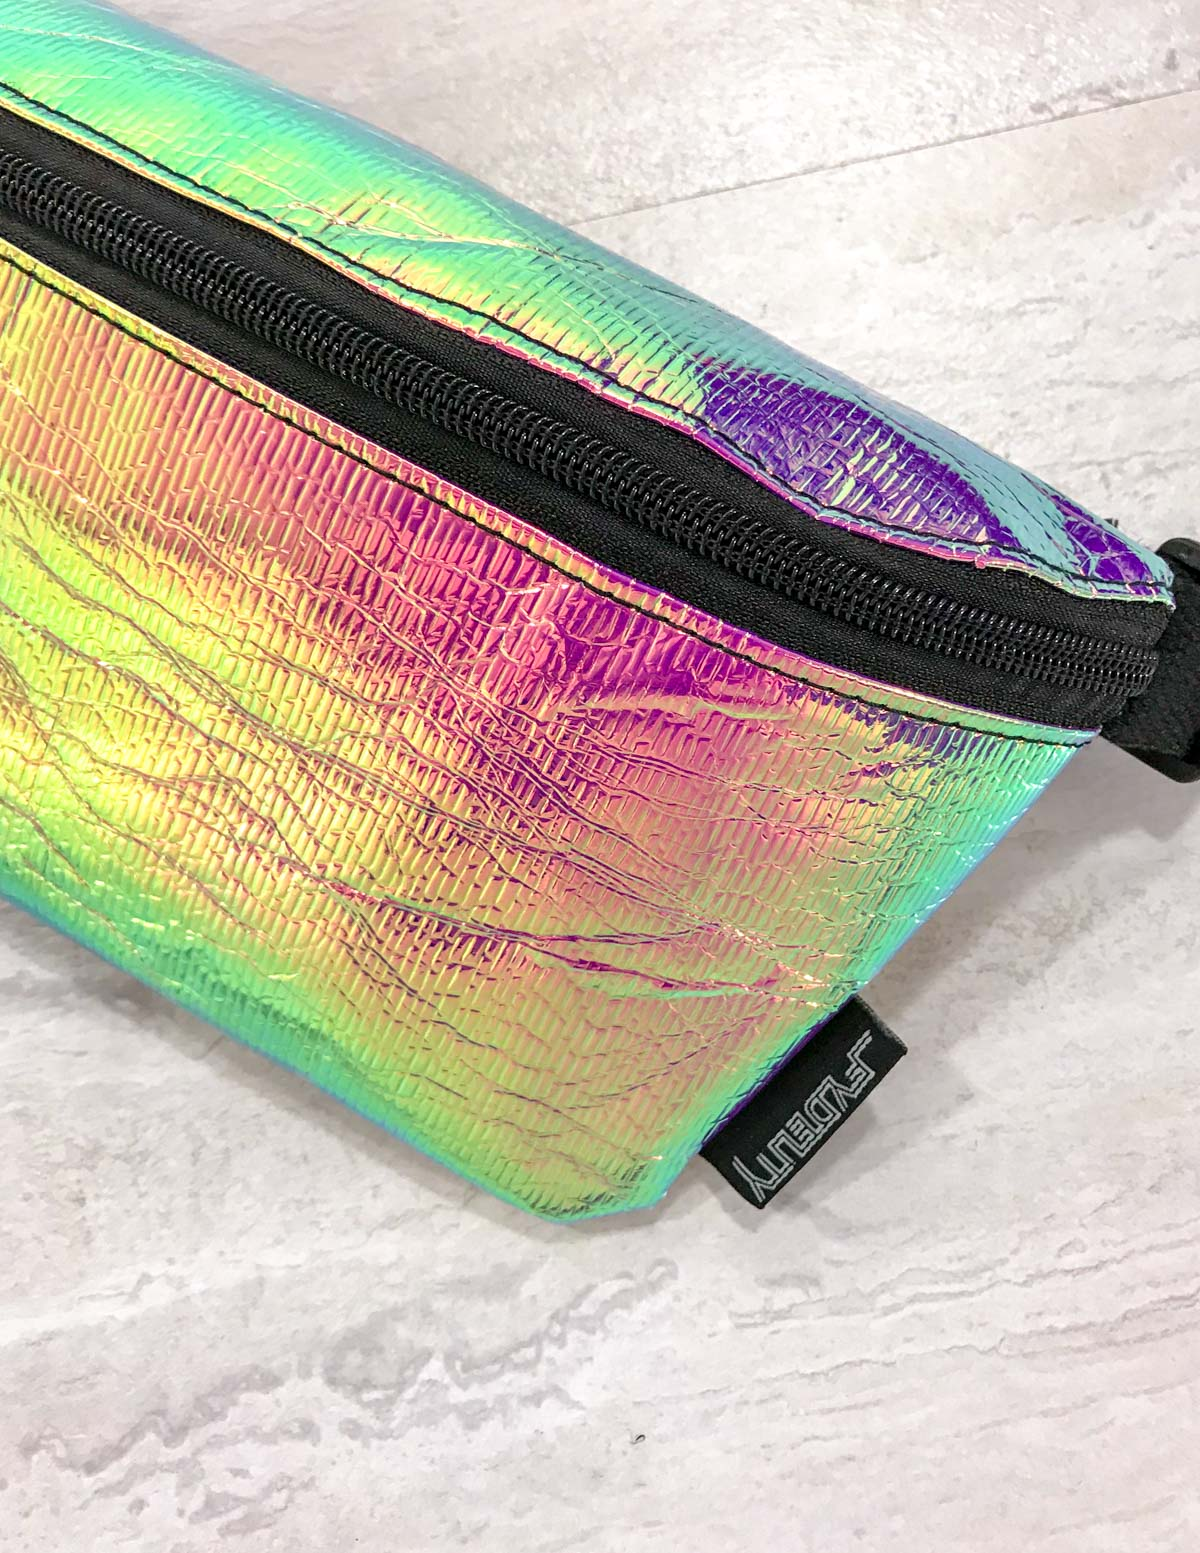 FYDELITY- Interplanetary Fanny Pack: Aura Spectral